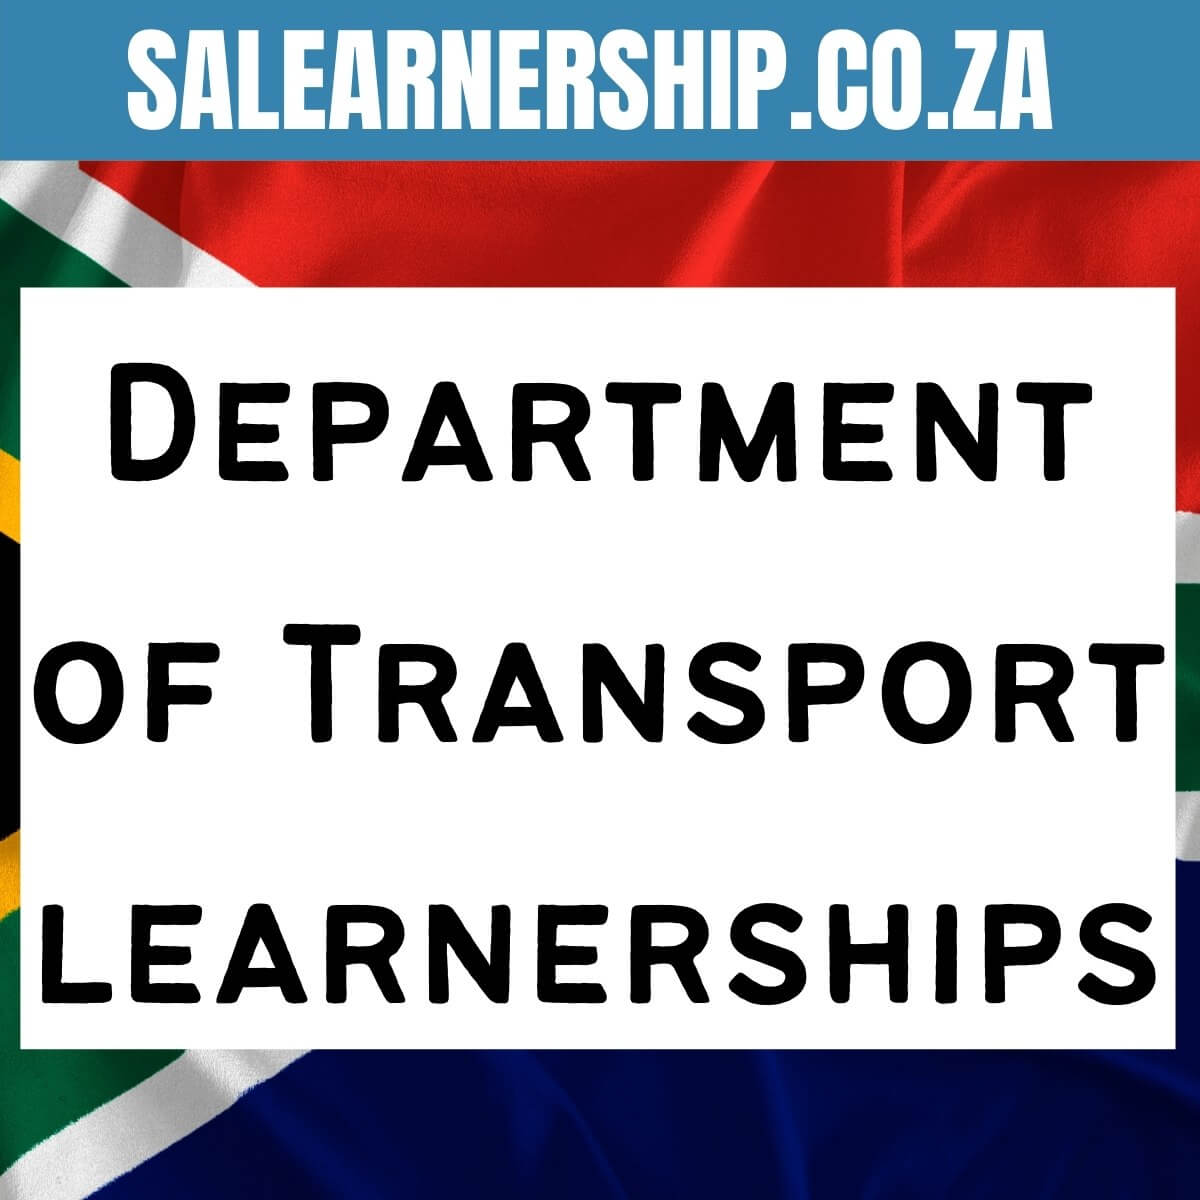 Department of Transport learnerships